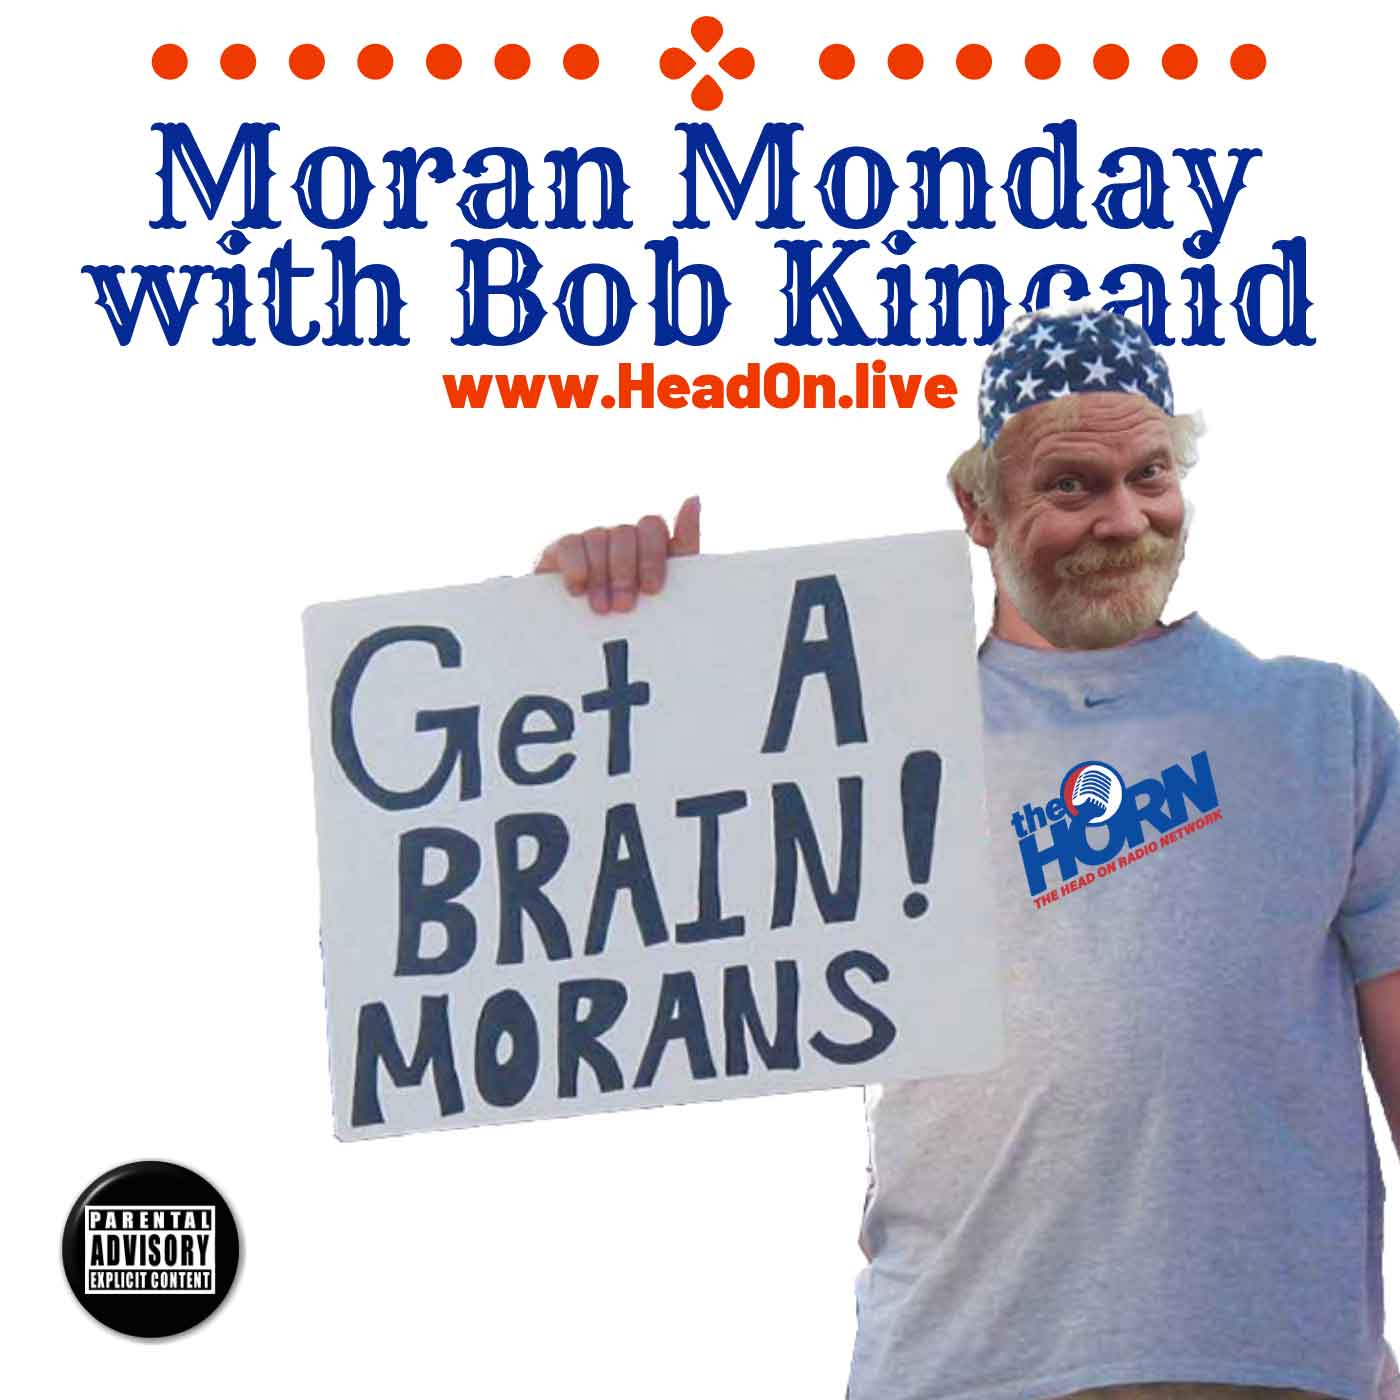 Moroviday Monday, Head-ON With Bob Kincaid, 29 June 2020